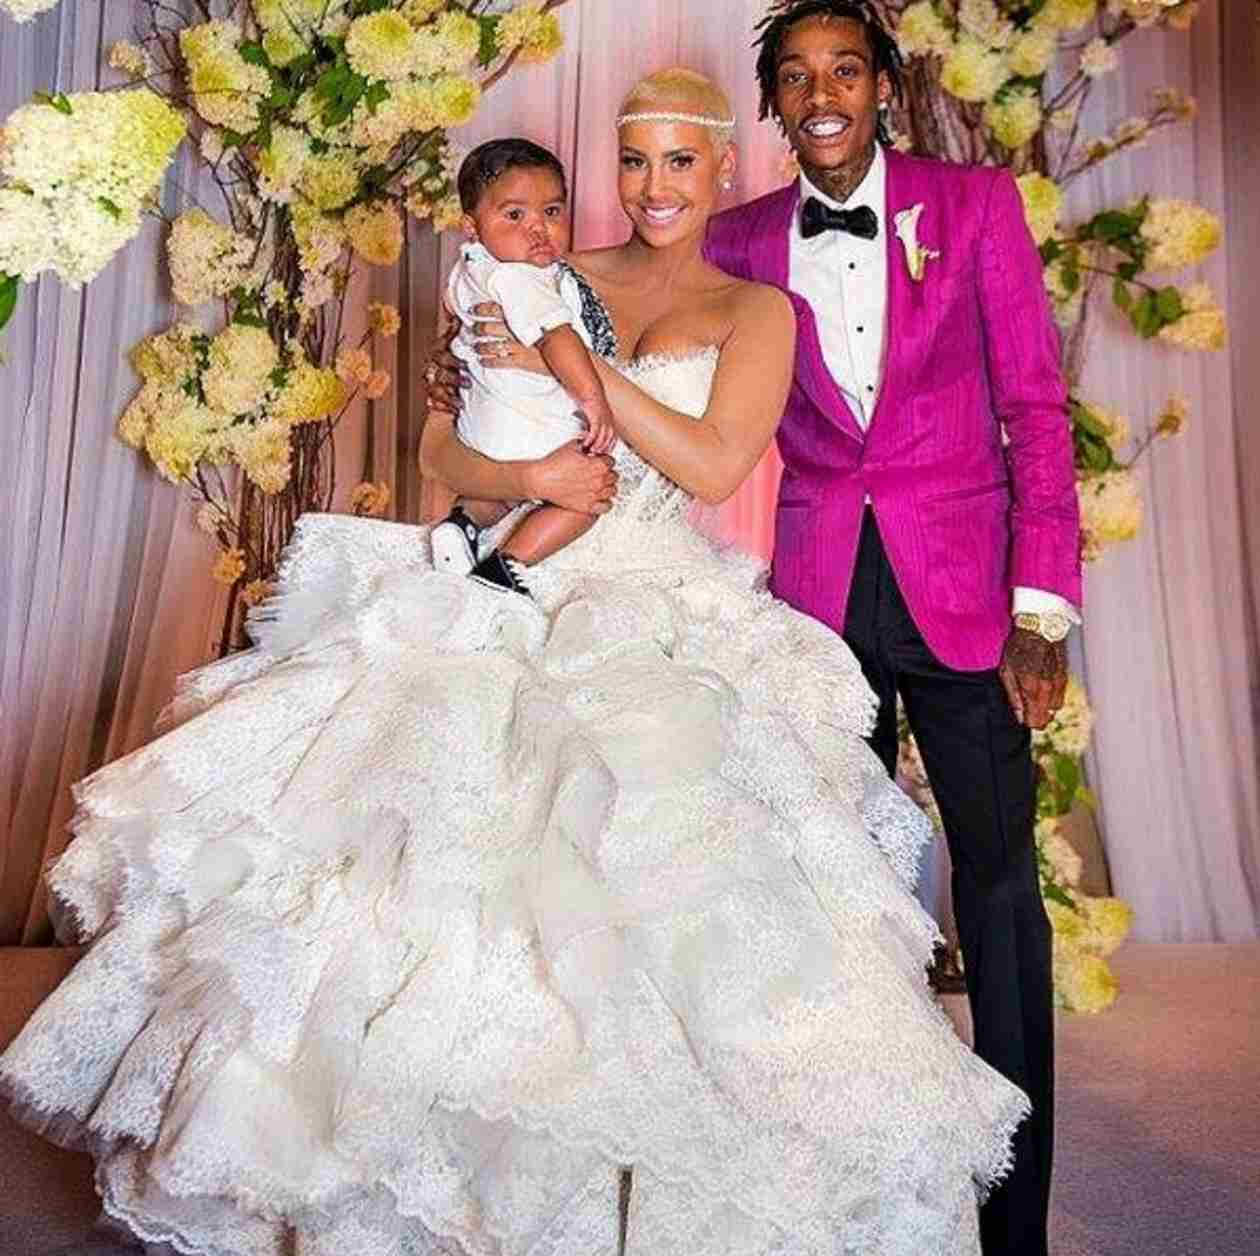 Amber Rose Shares Wedding Photos With Wiz Khalifa For Their Anniversary! (VIDEO)